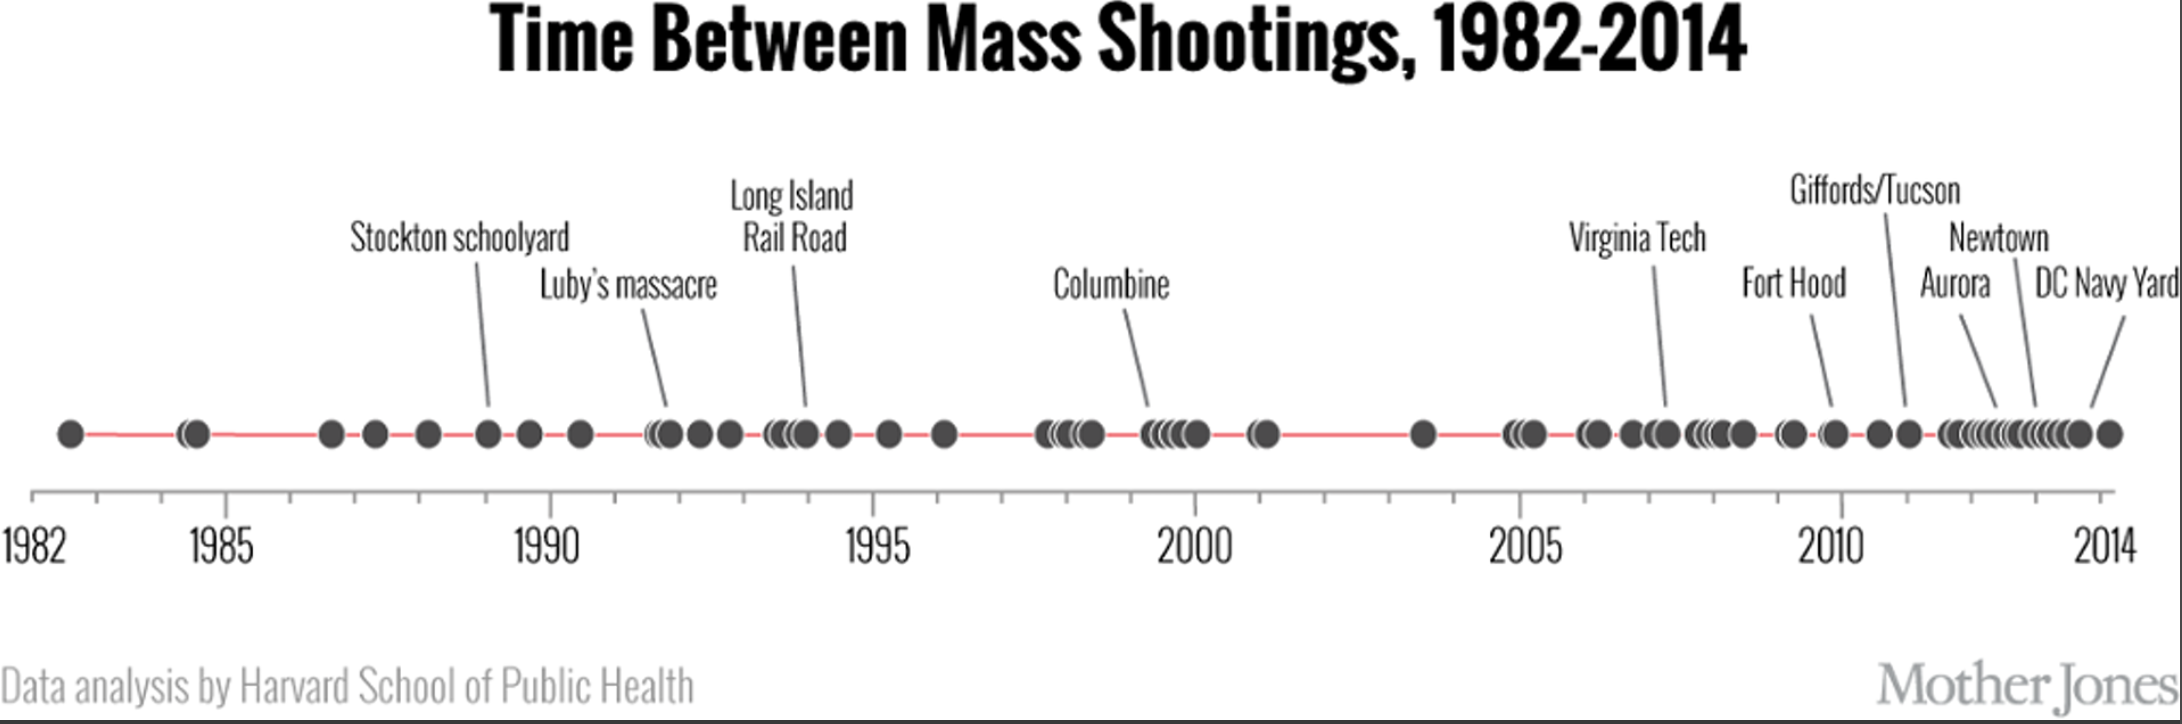 Time Between Mass Shootings